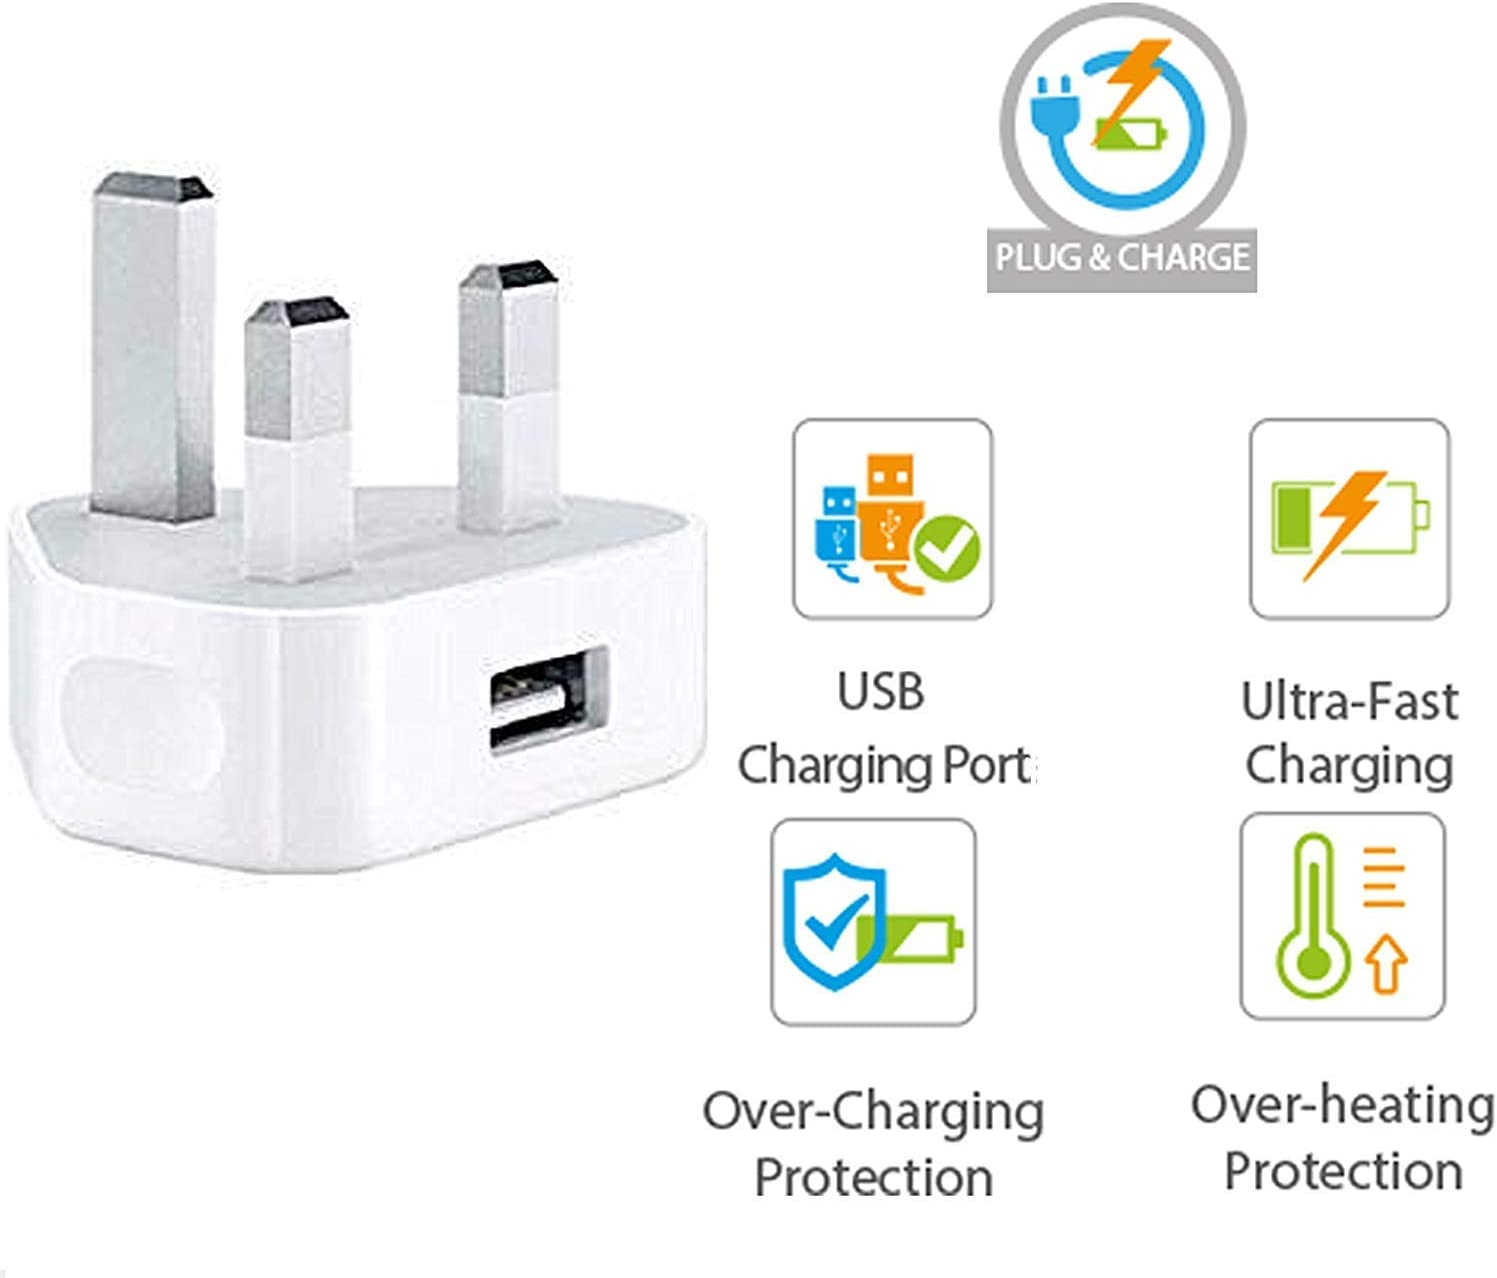 UK Mains Charger Single USB 1 Amp, In